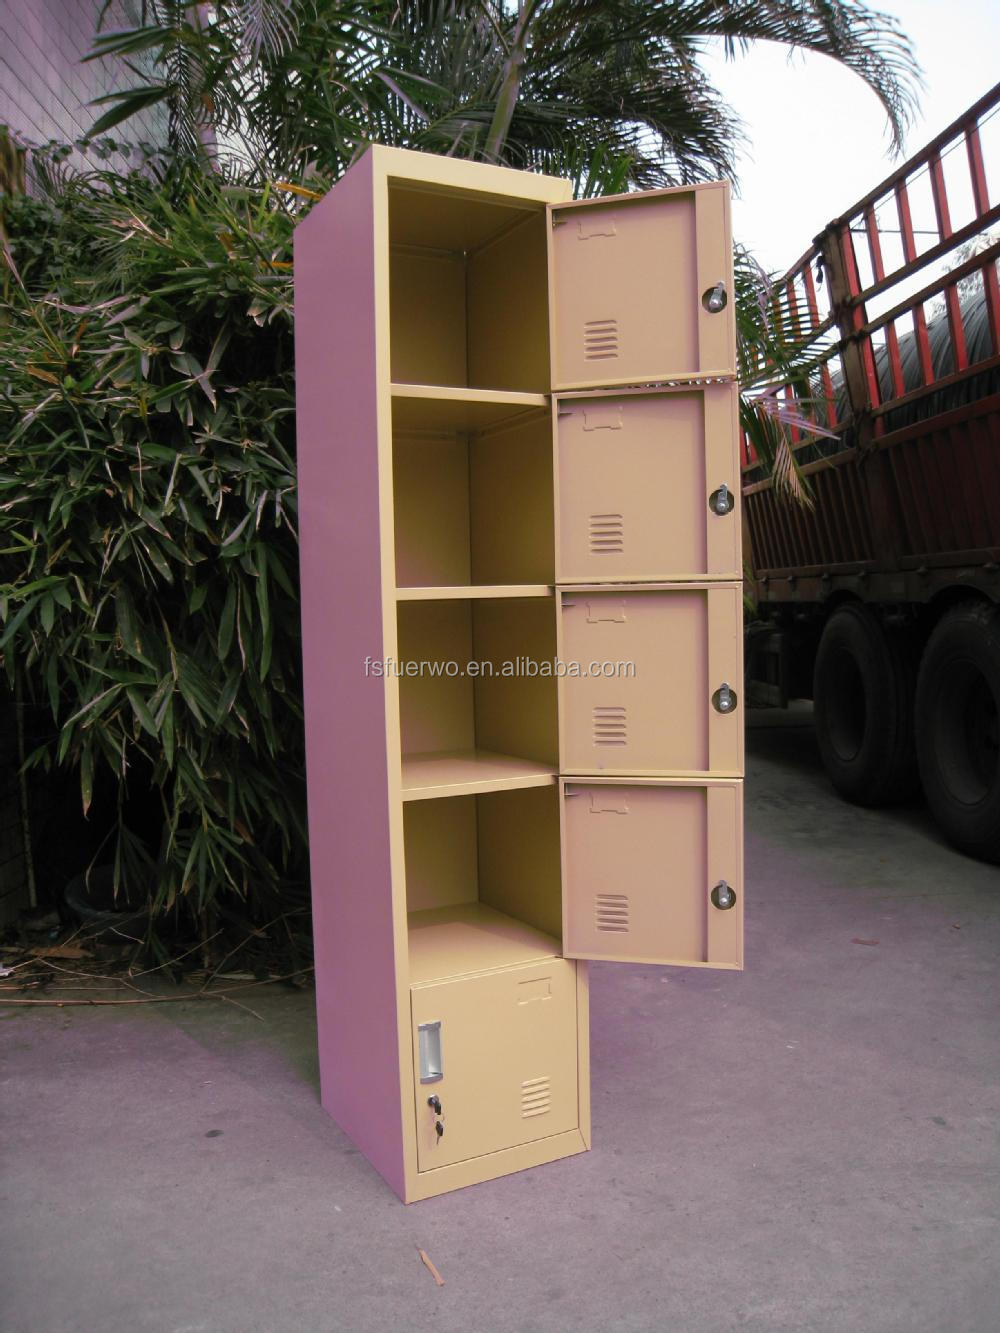 Shunde wholesale cheap bench metal clothing sports lockers